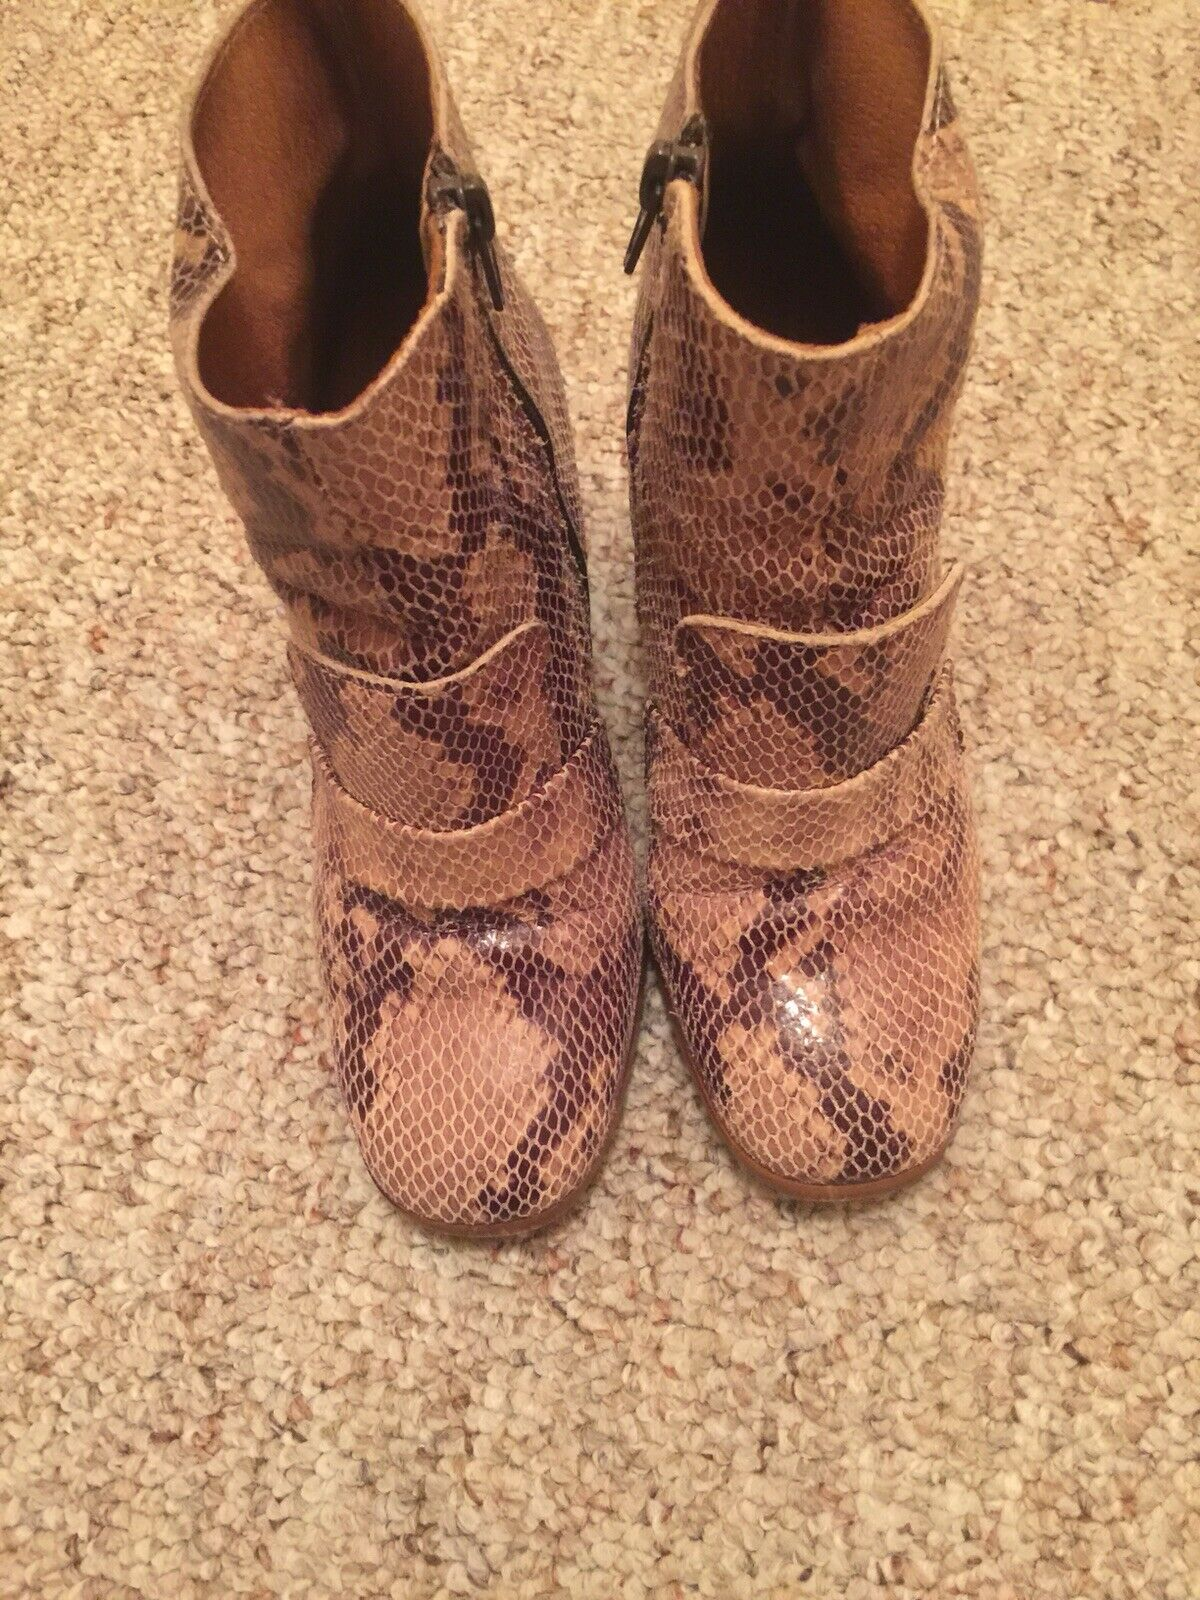 Topshop Made In Spain Python Pattern Ankle Boots, Size 37